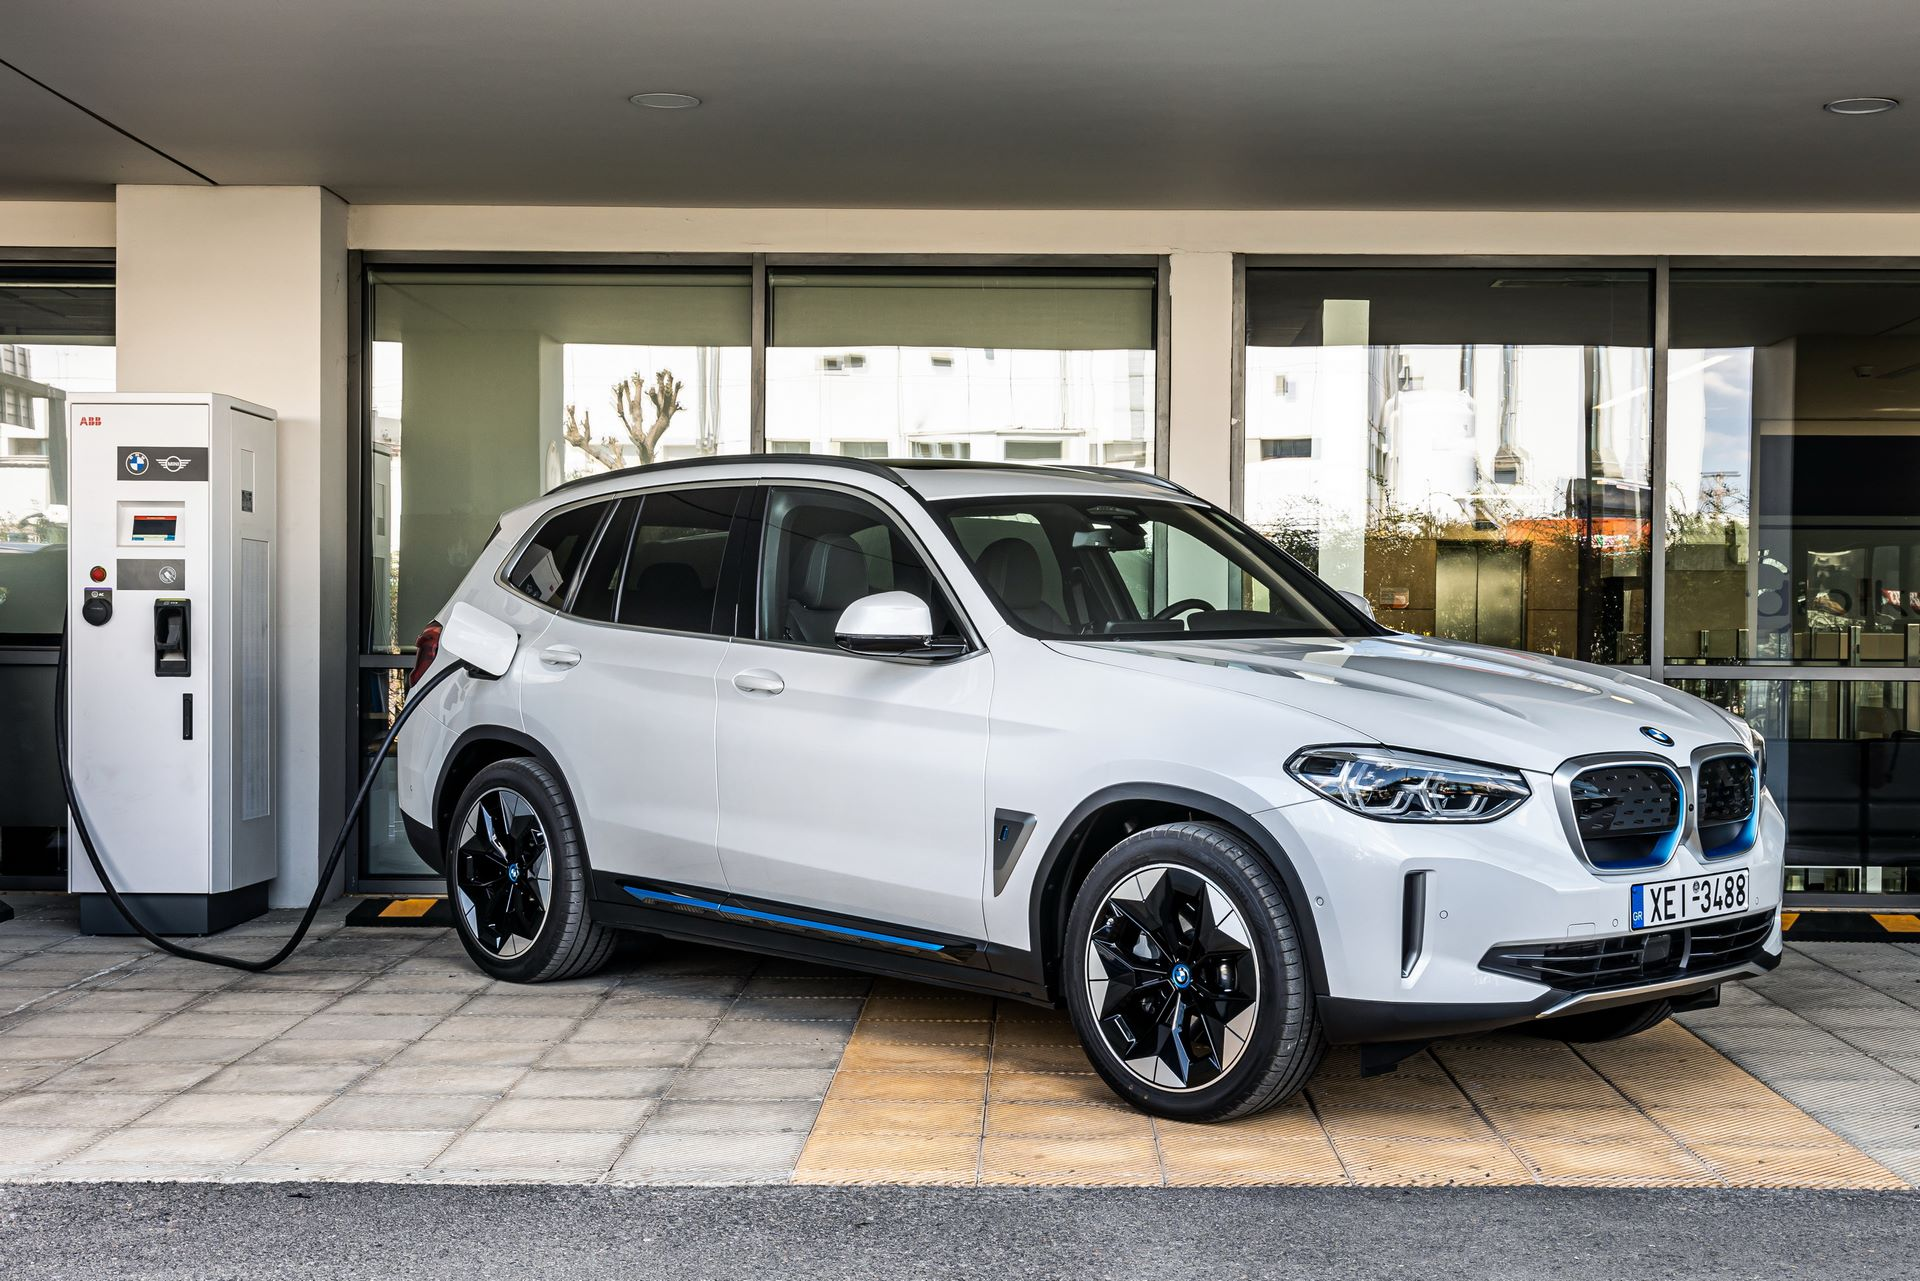 BMW-Group-Hellas-EV-Electric-Chargers-Charging-7